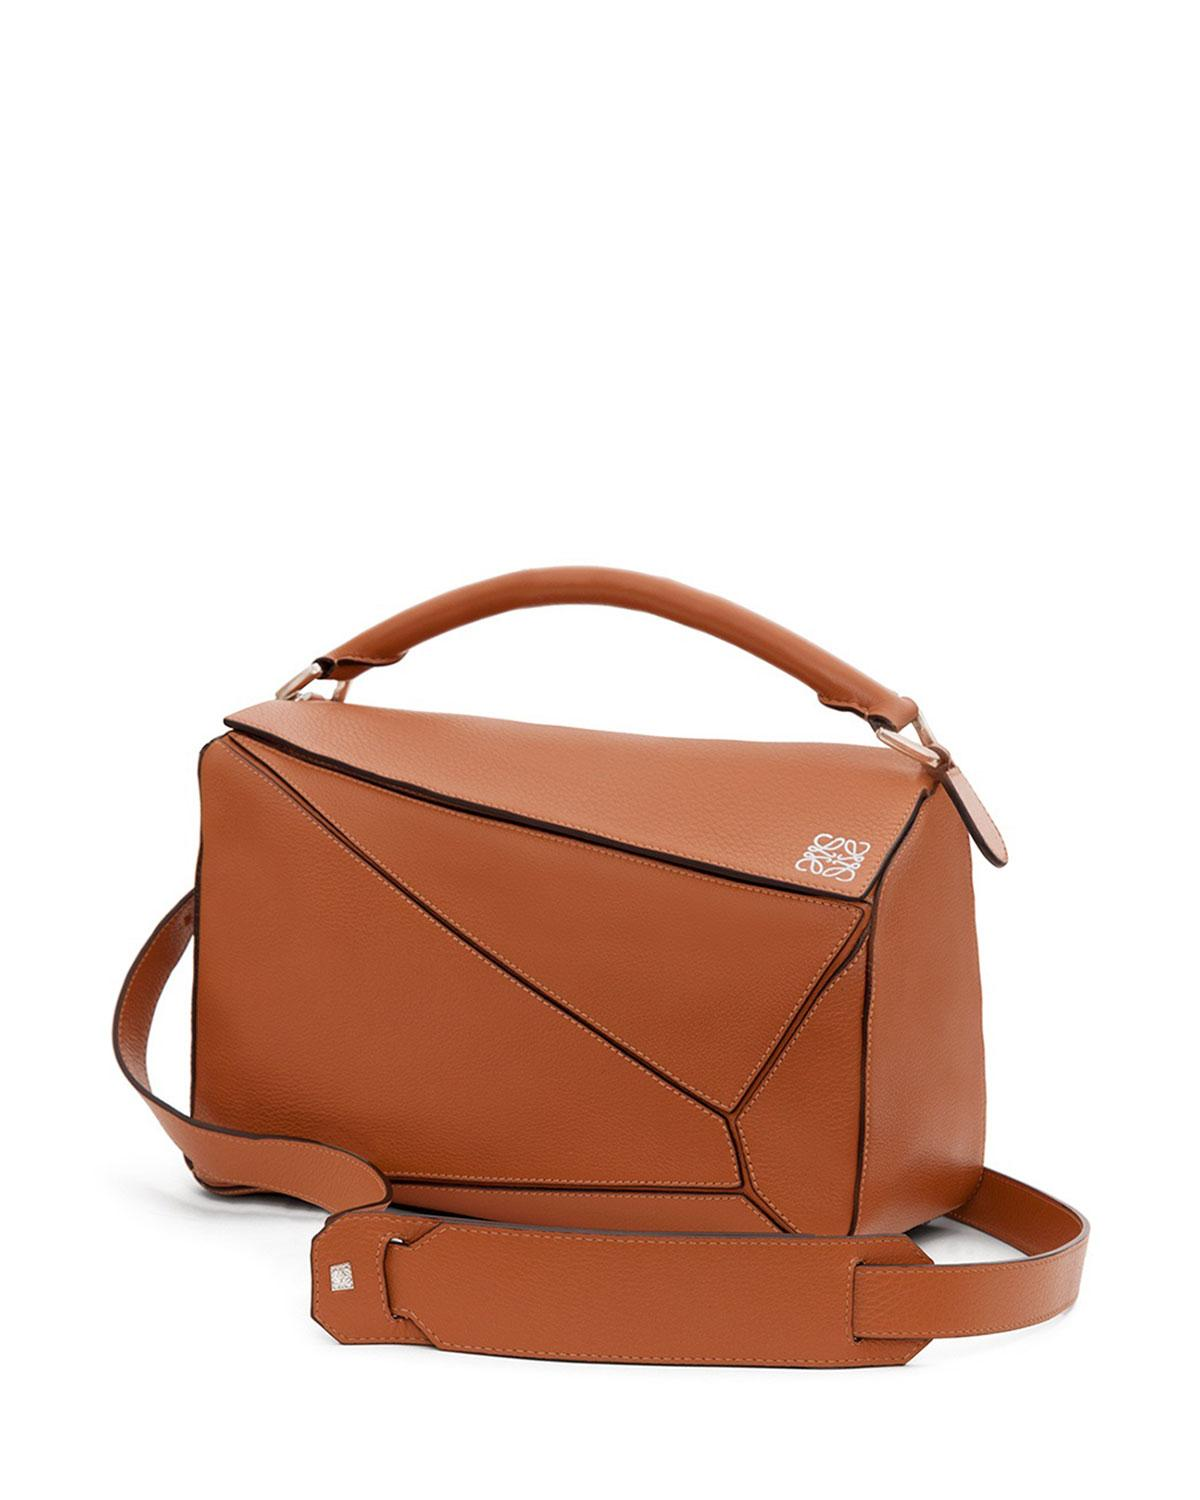 Lyst - Loewe Leather Puzzle Bag in Brown 523f511858ce7